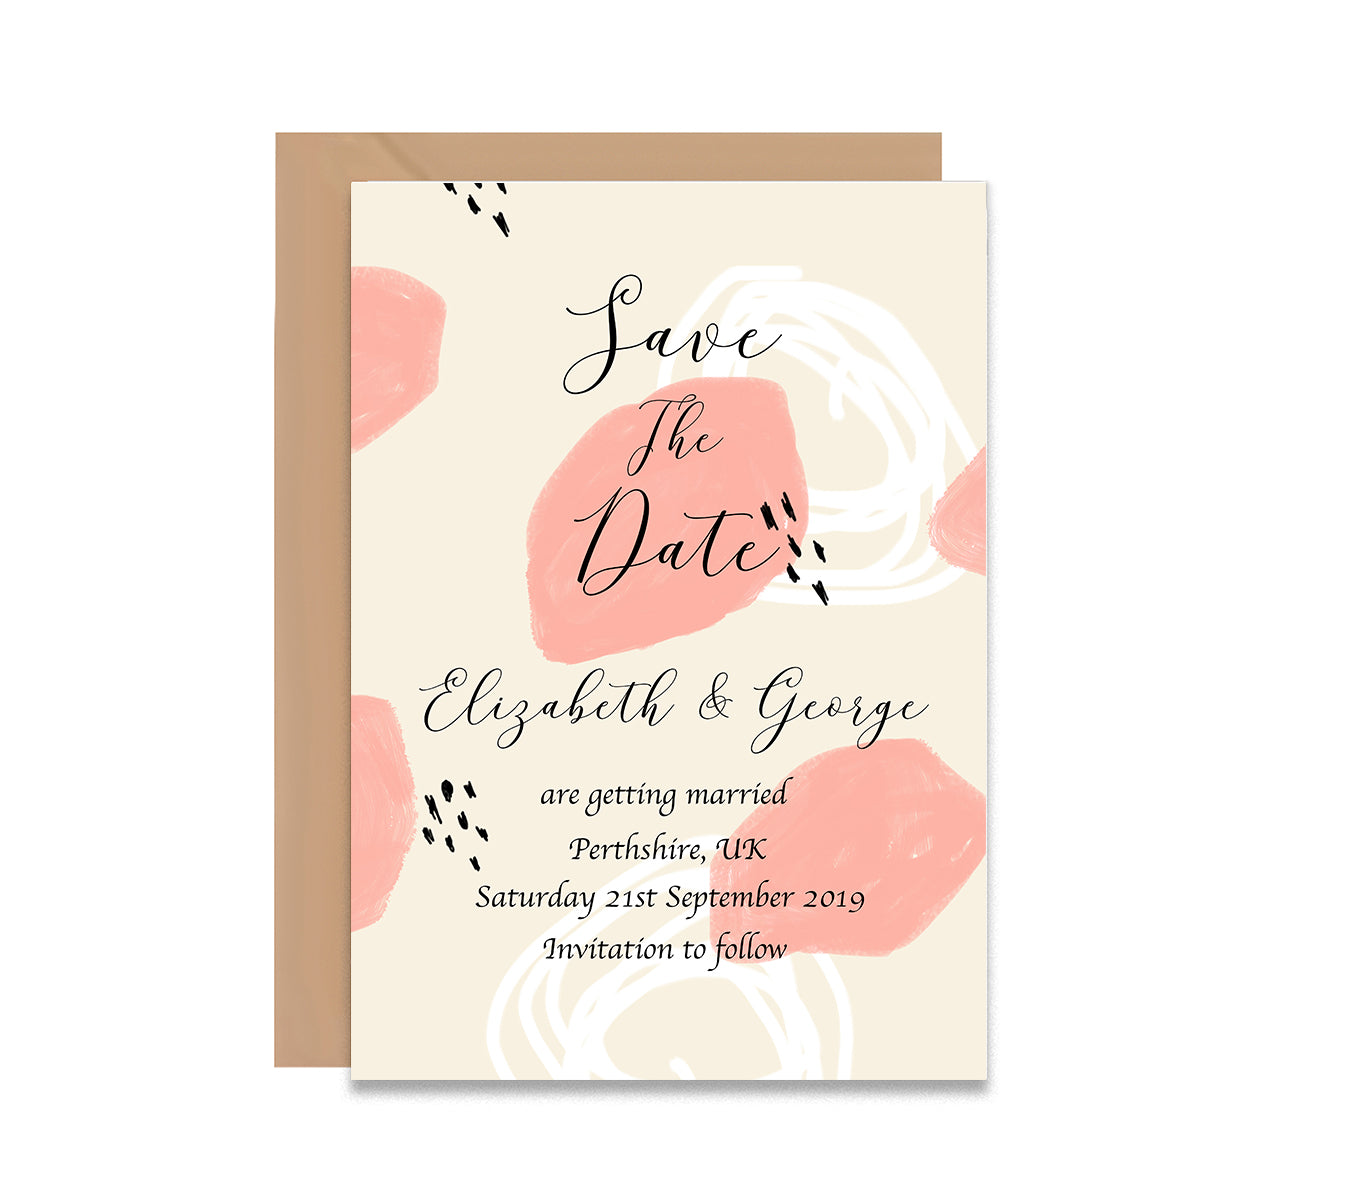 Abstract 3 Save The Dates Wedding Card-Wedding Stationary-Mode Prints